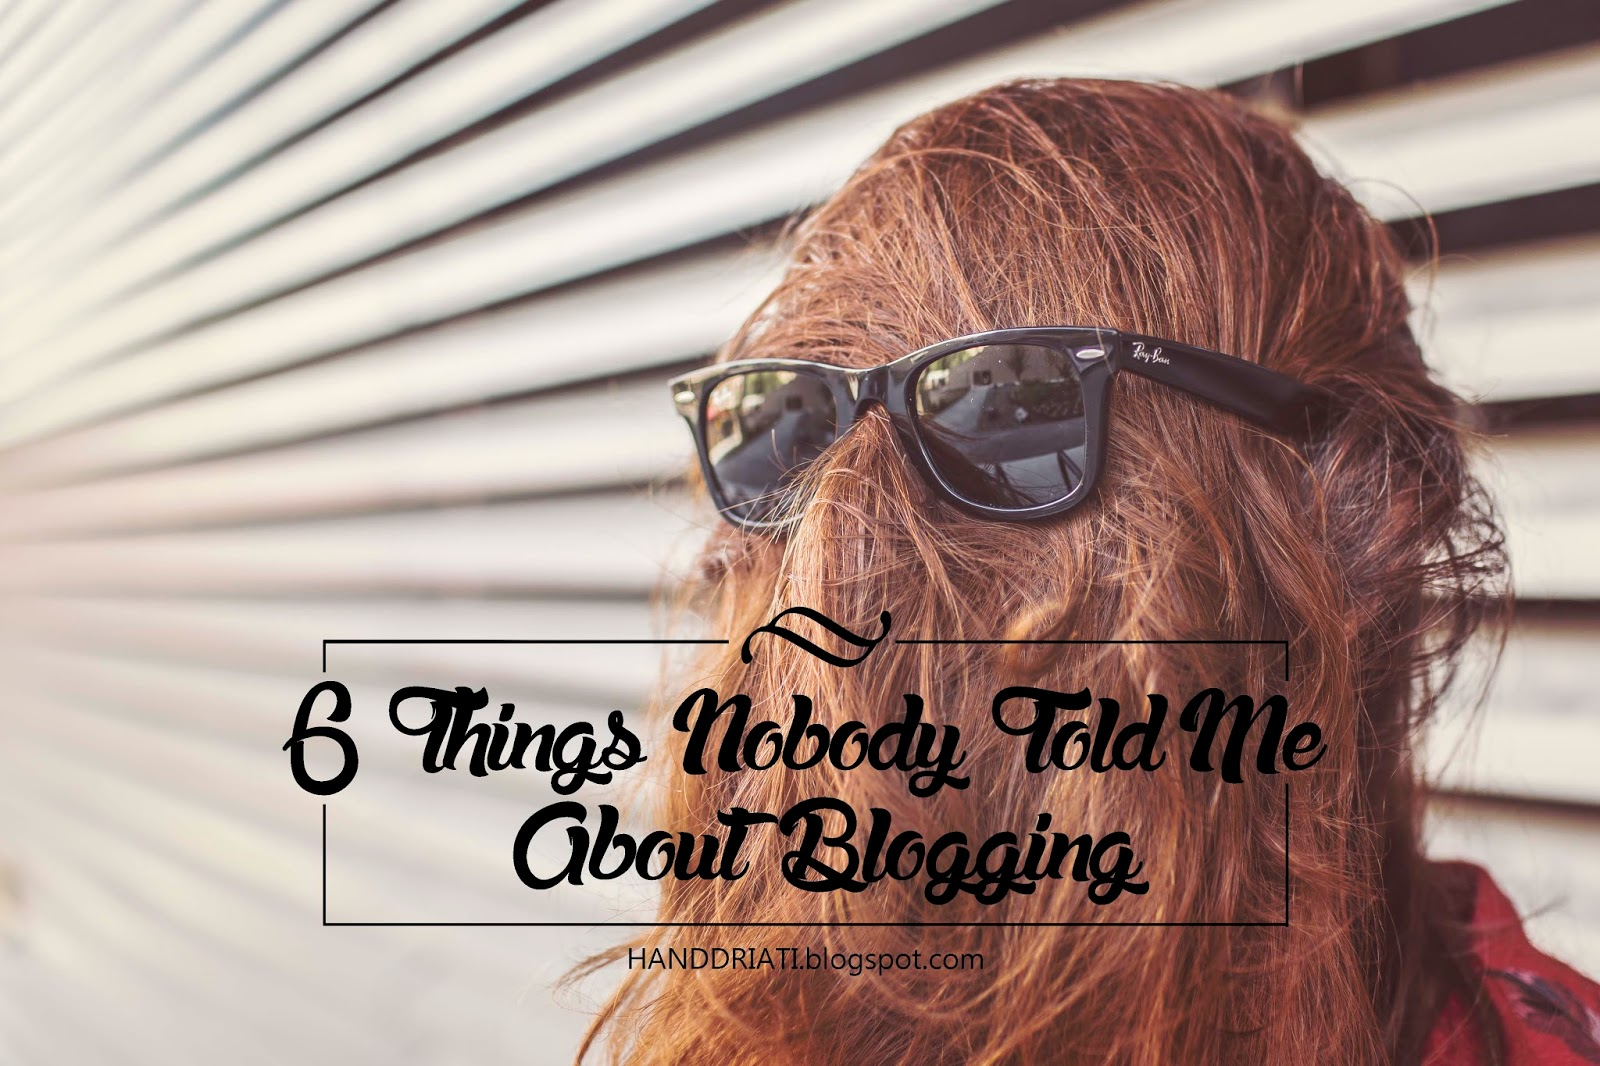 6 Things Nobody Told Me About Blogging